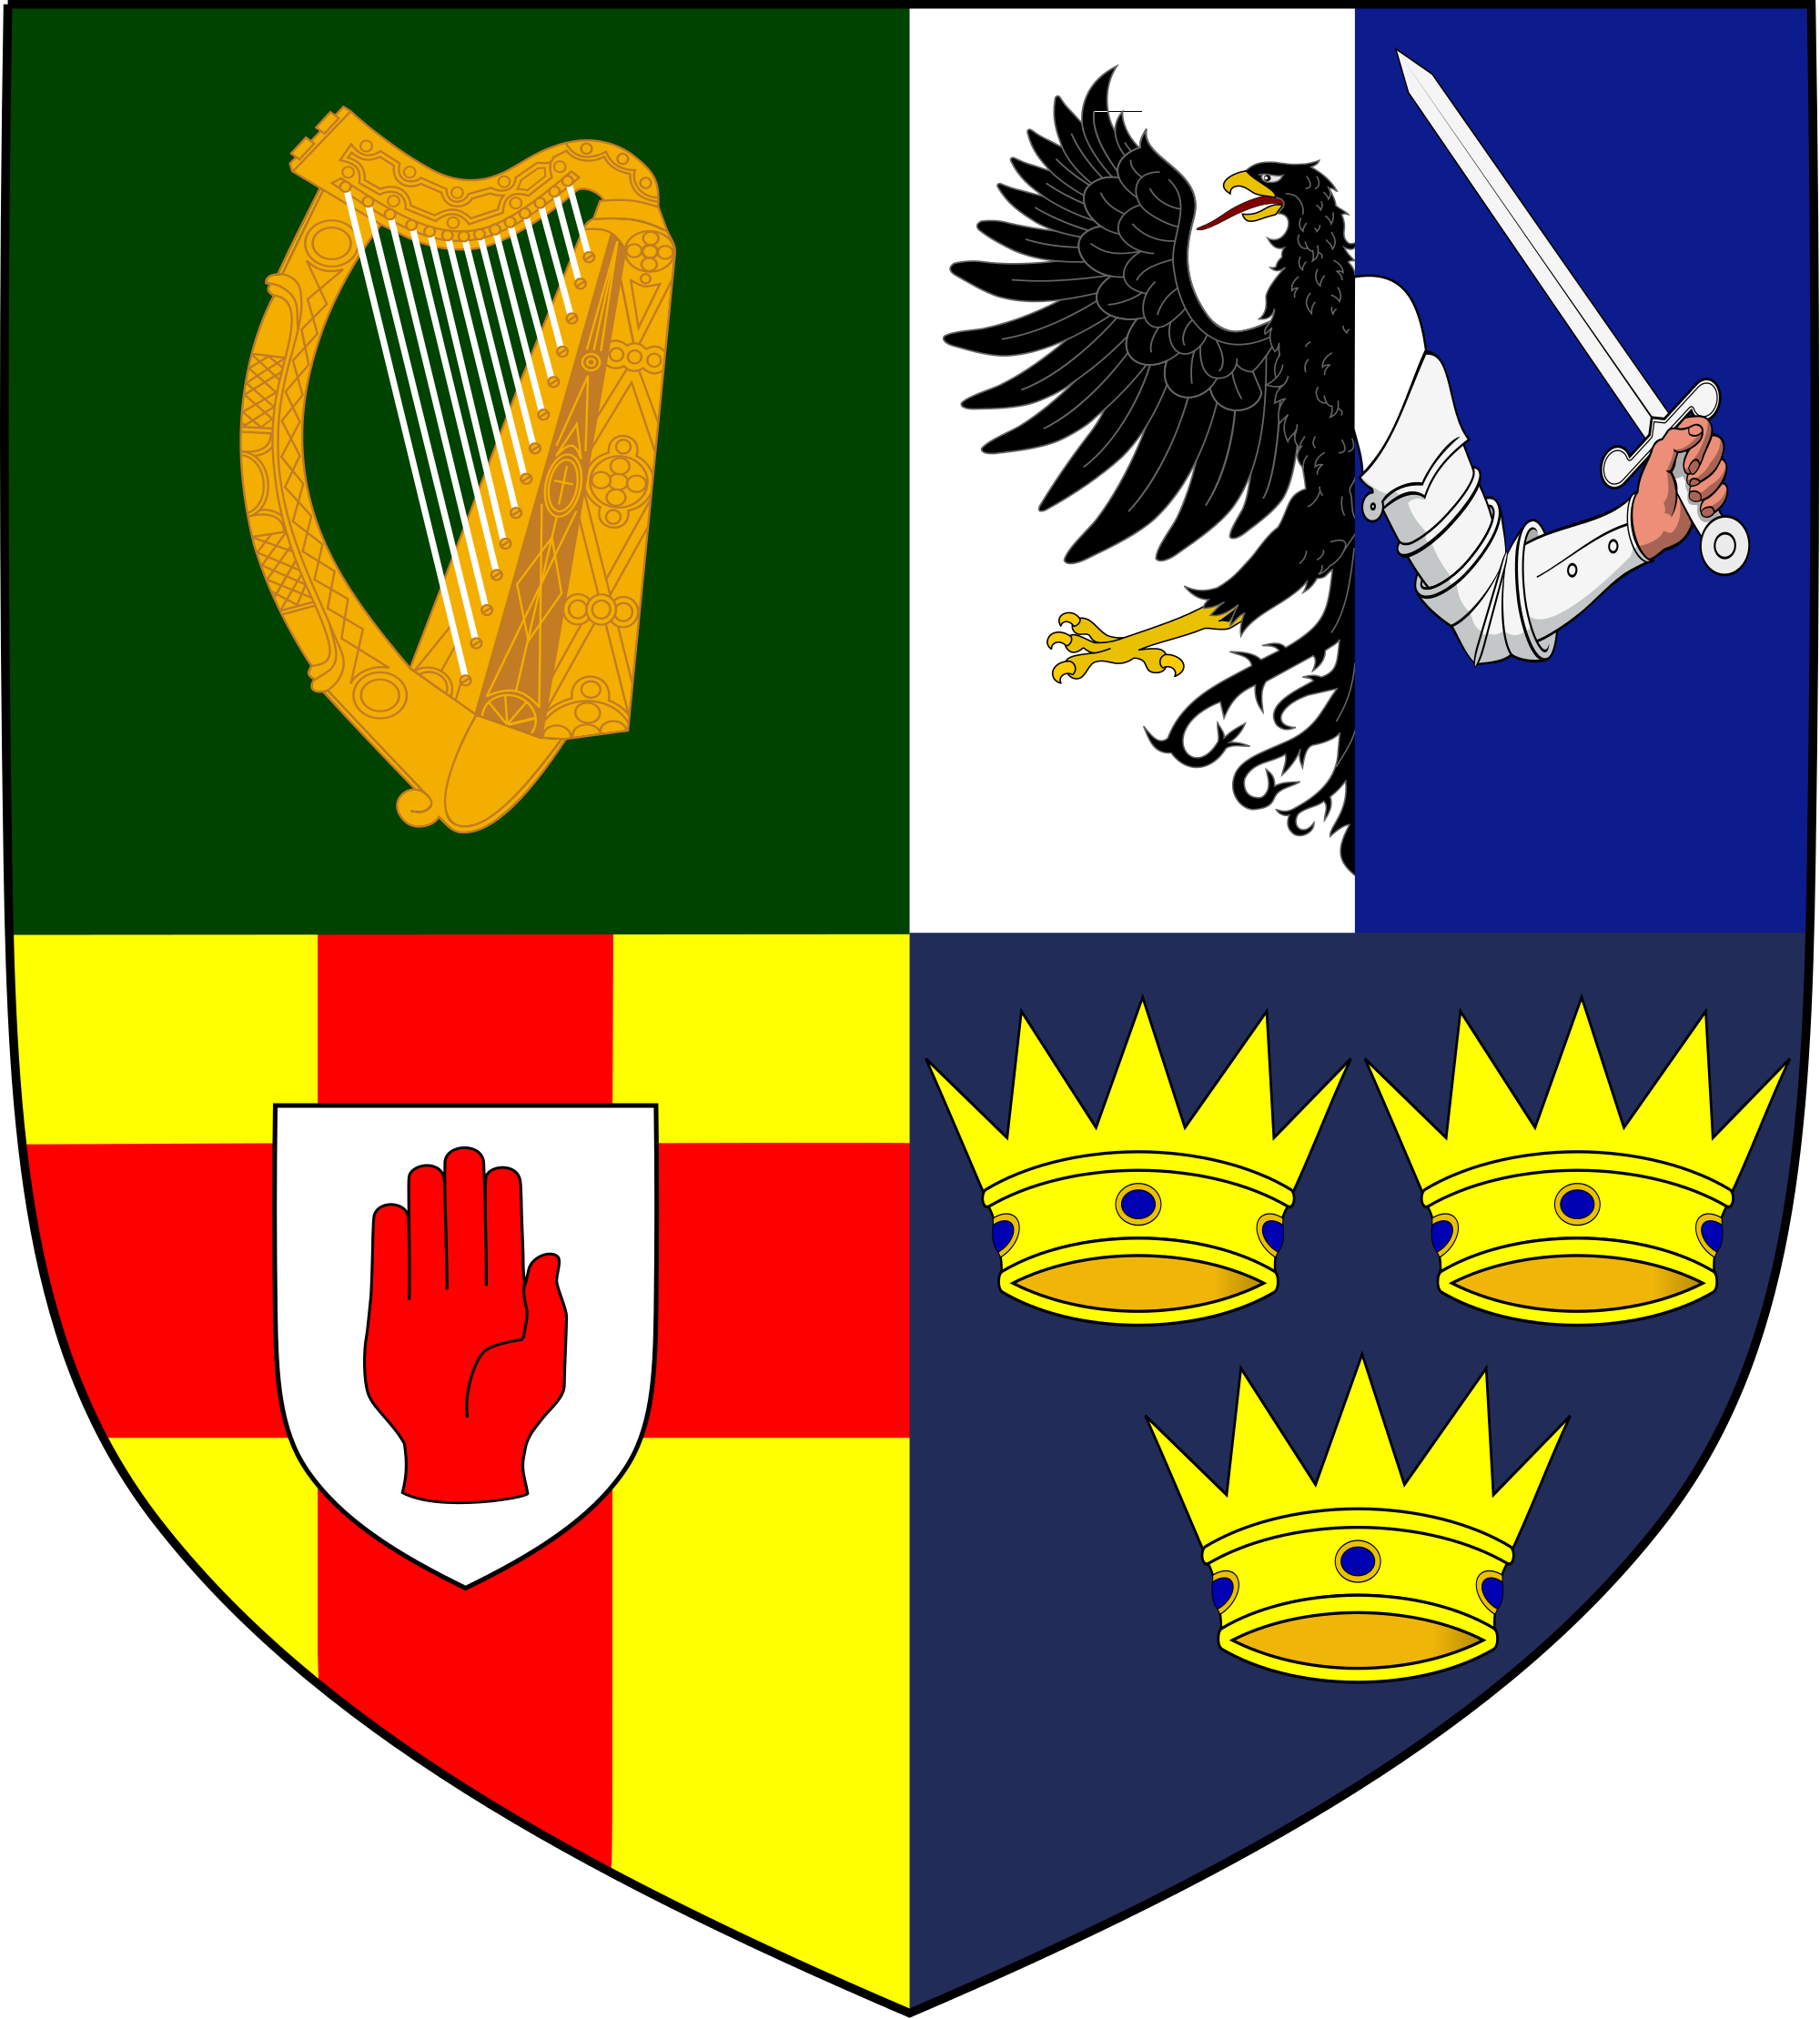 The emblem of the provinces of ireland leinster connacht ulster the emblem of the provinces of ireland leinster connacht ulster and munster buycottarizona Images